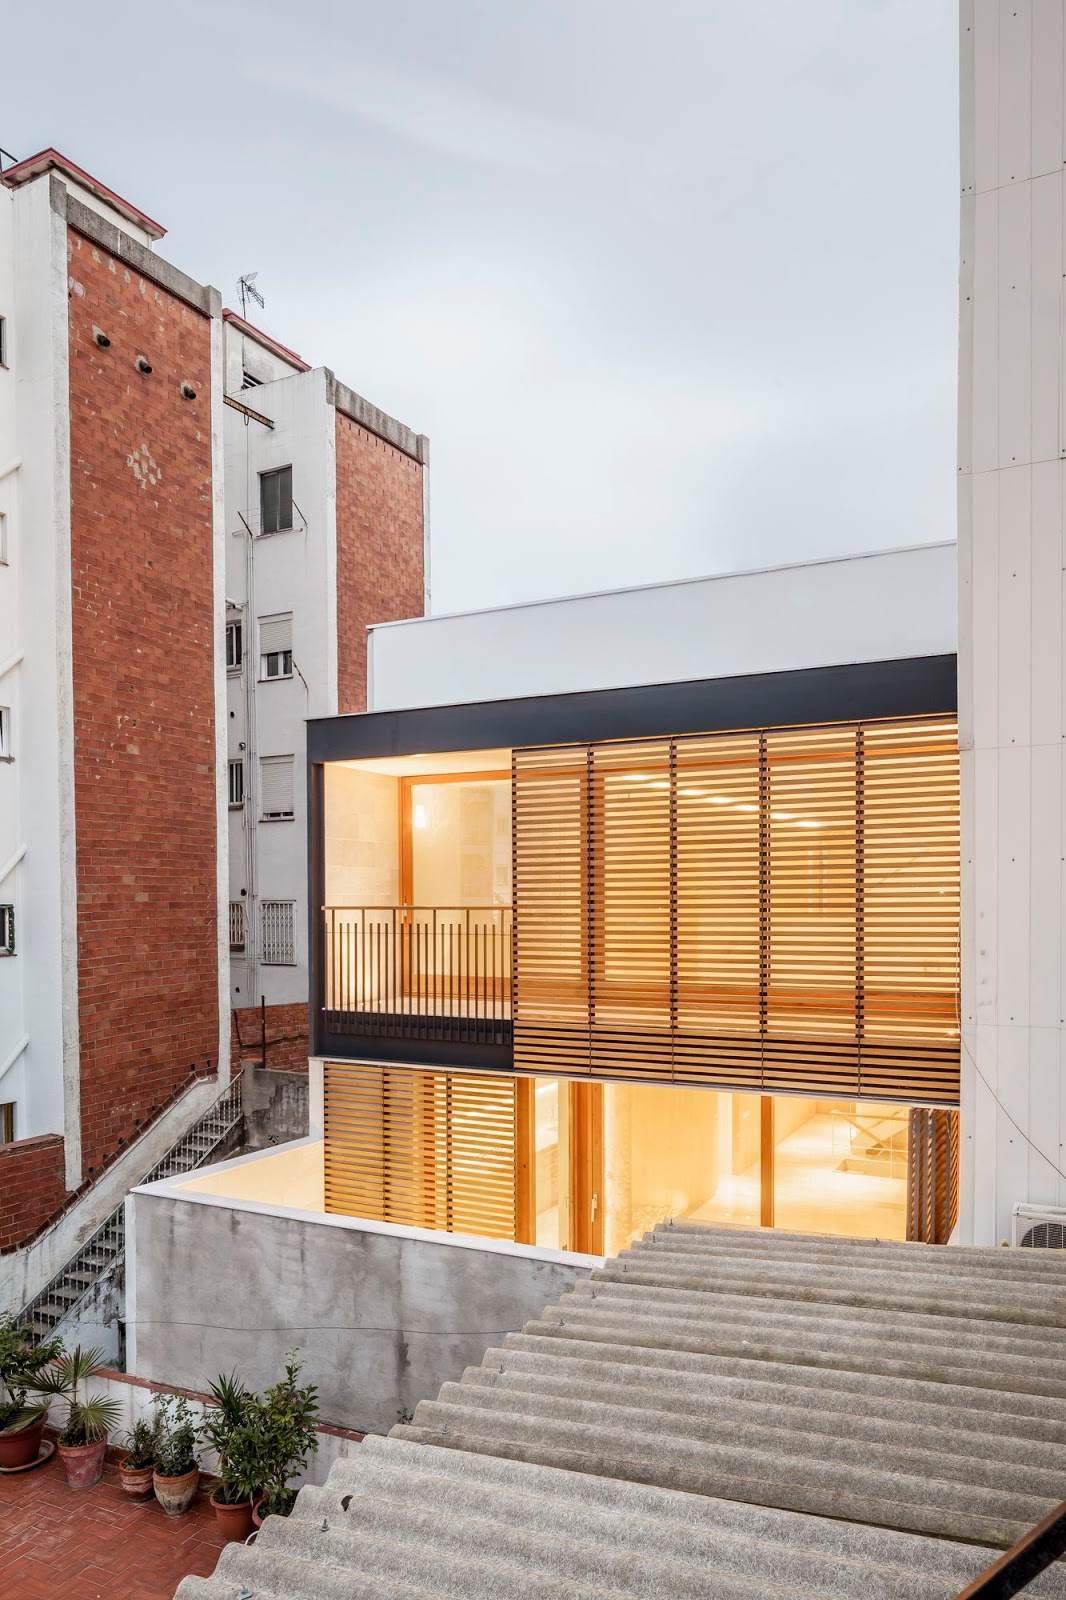 A f a s i a alventosa morell arquitectes for Moderne rijwoning